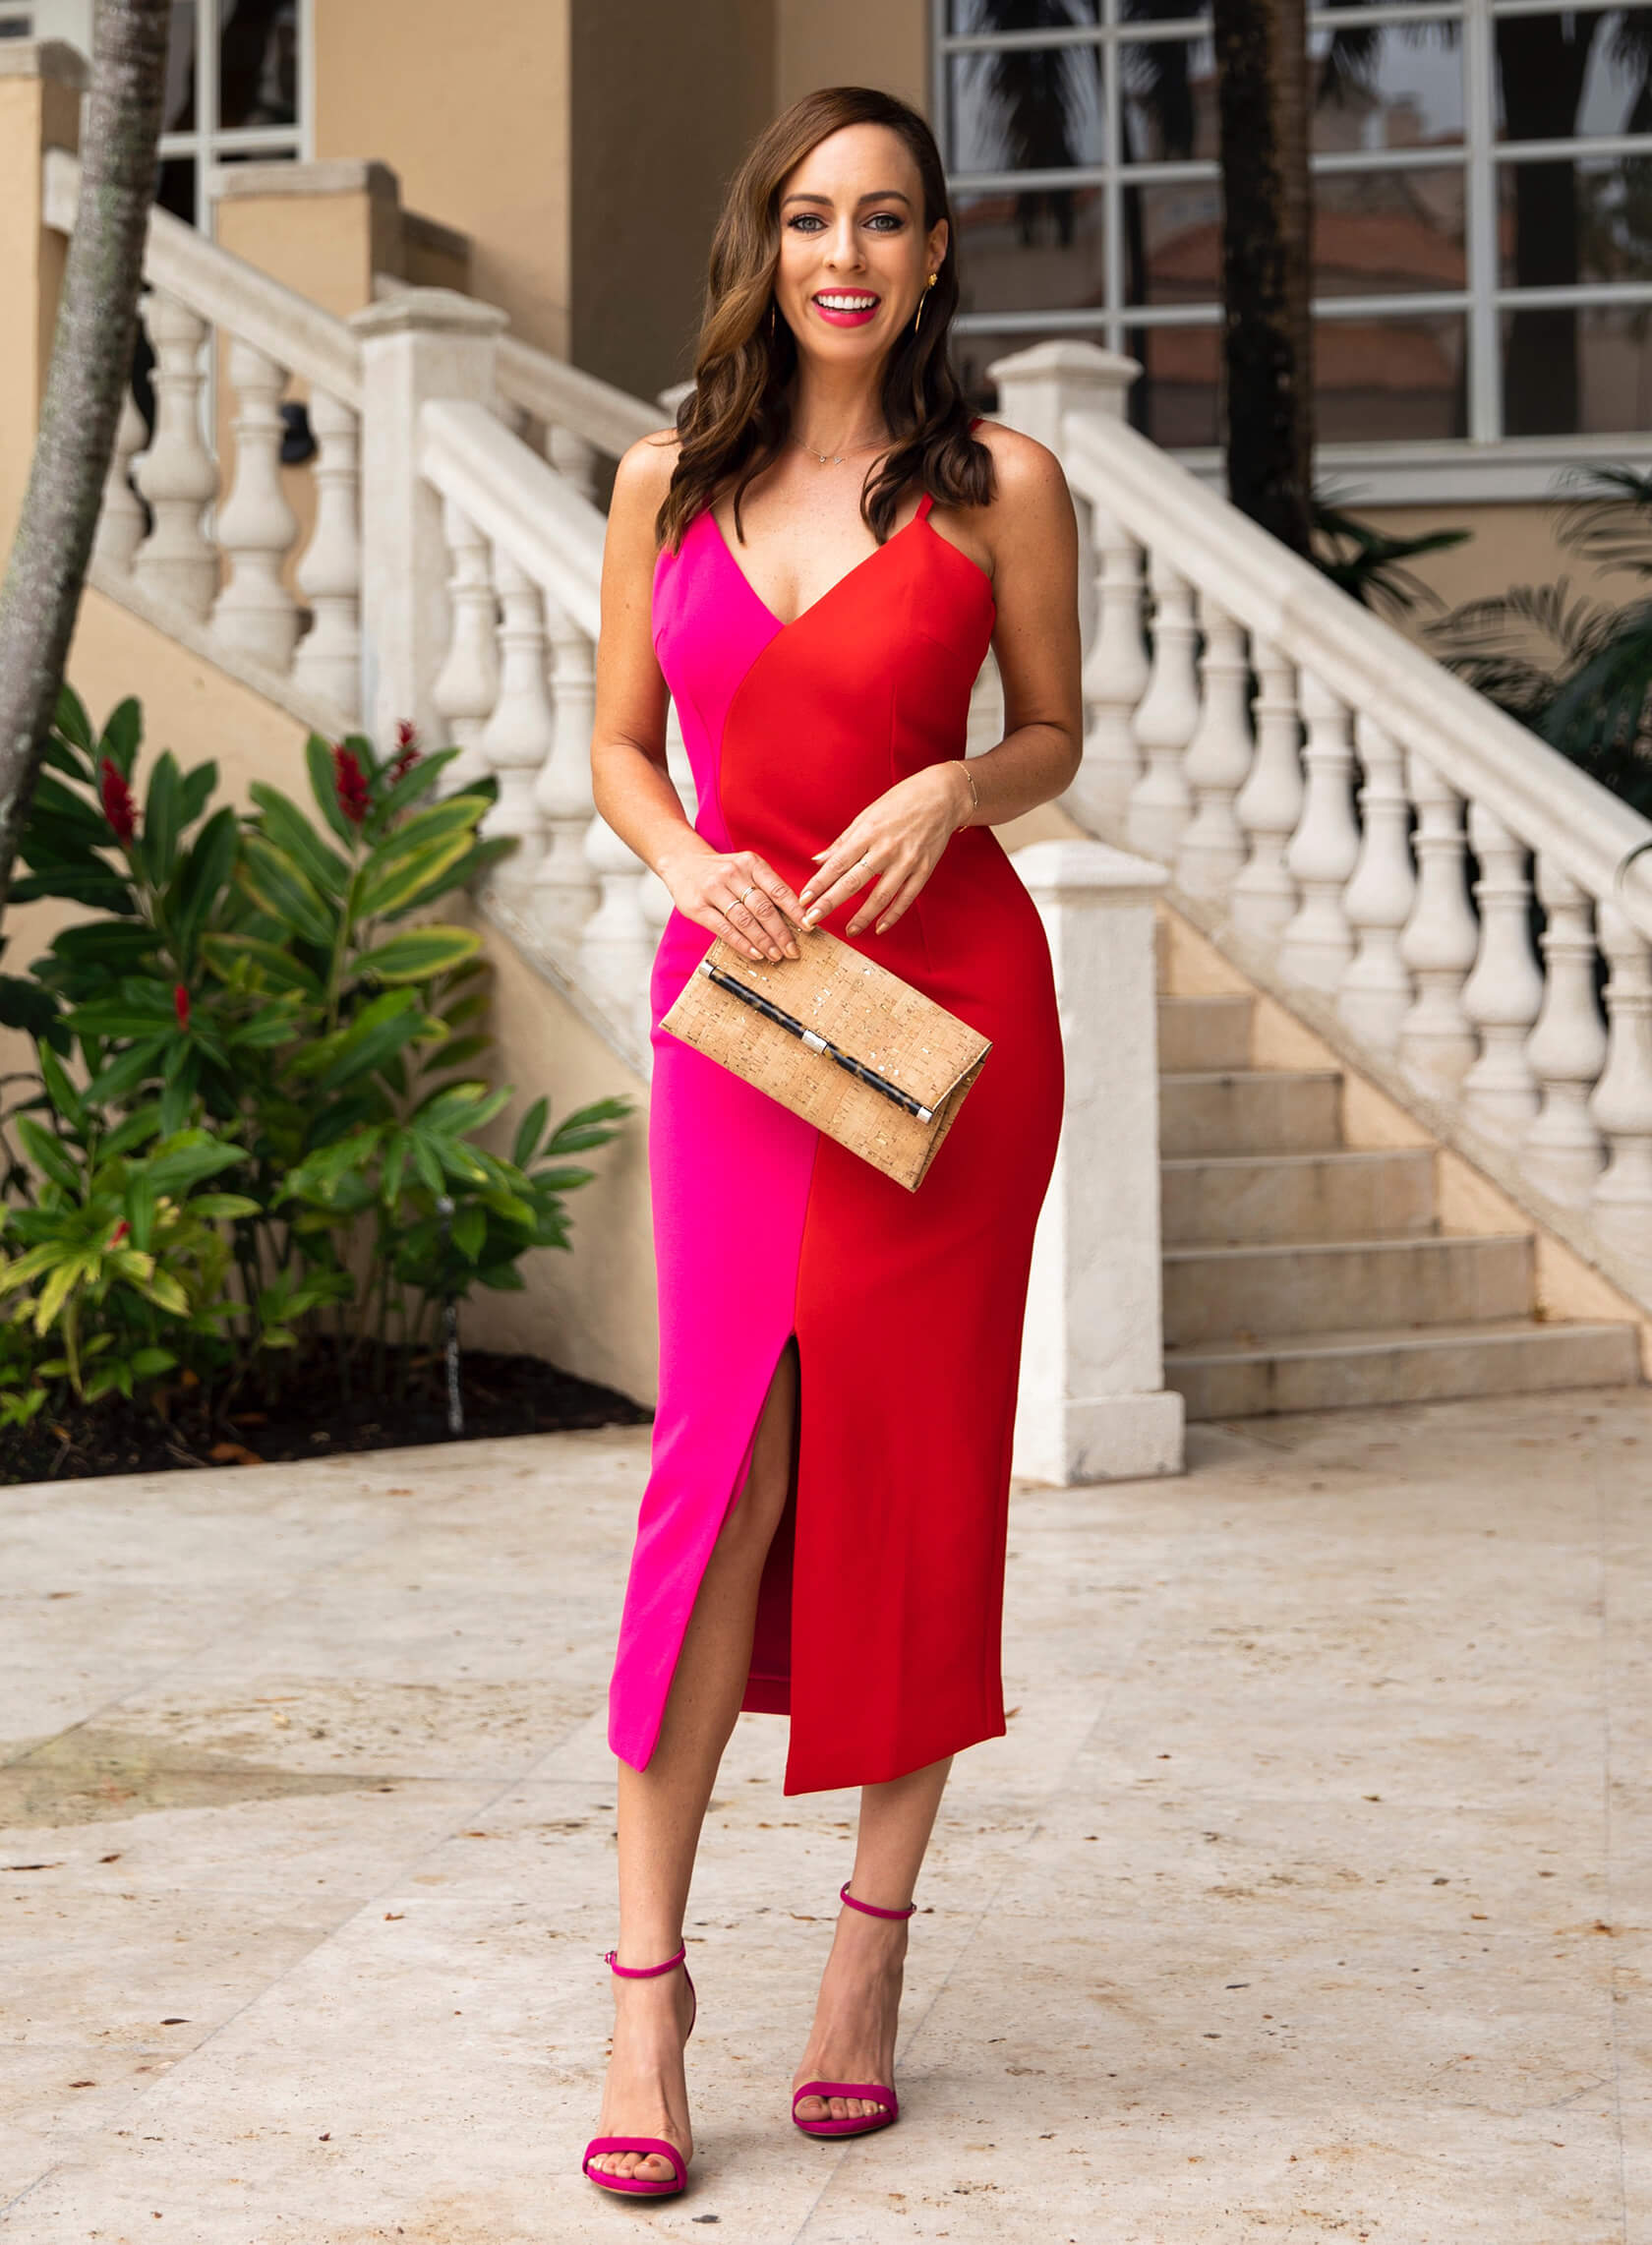 Sydne Style reviews elliat pink and red dres for summer weddings